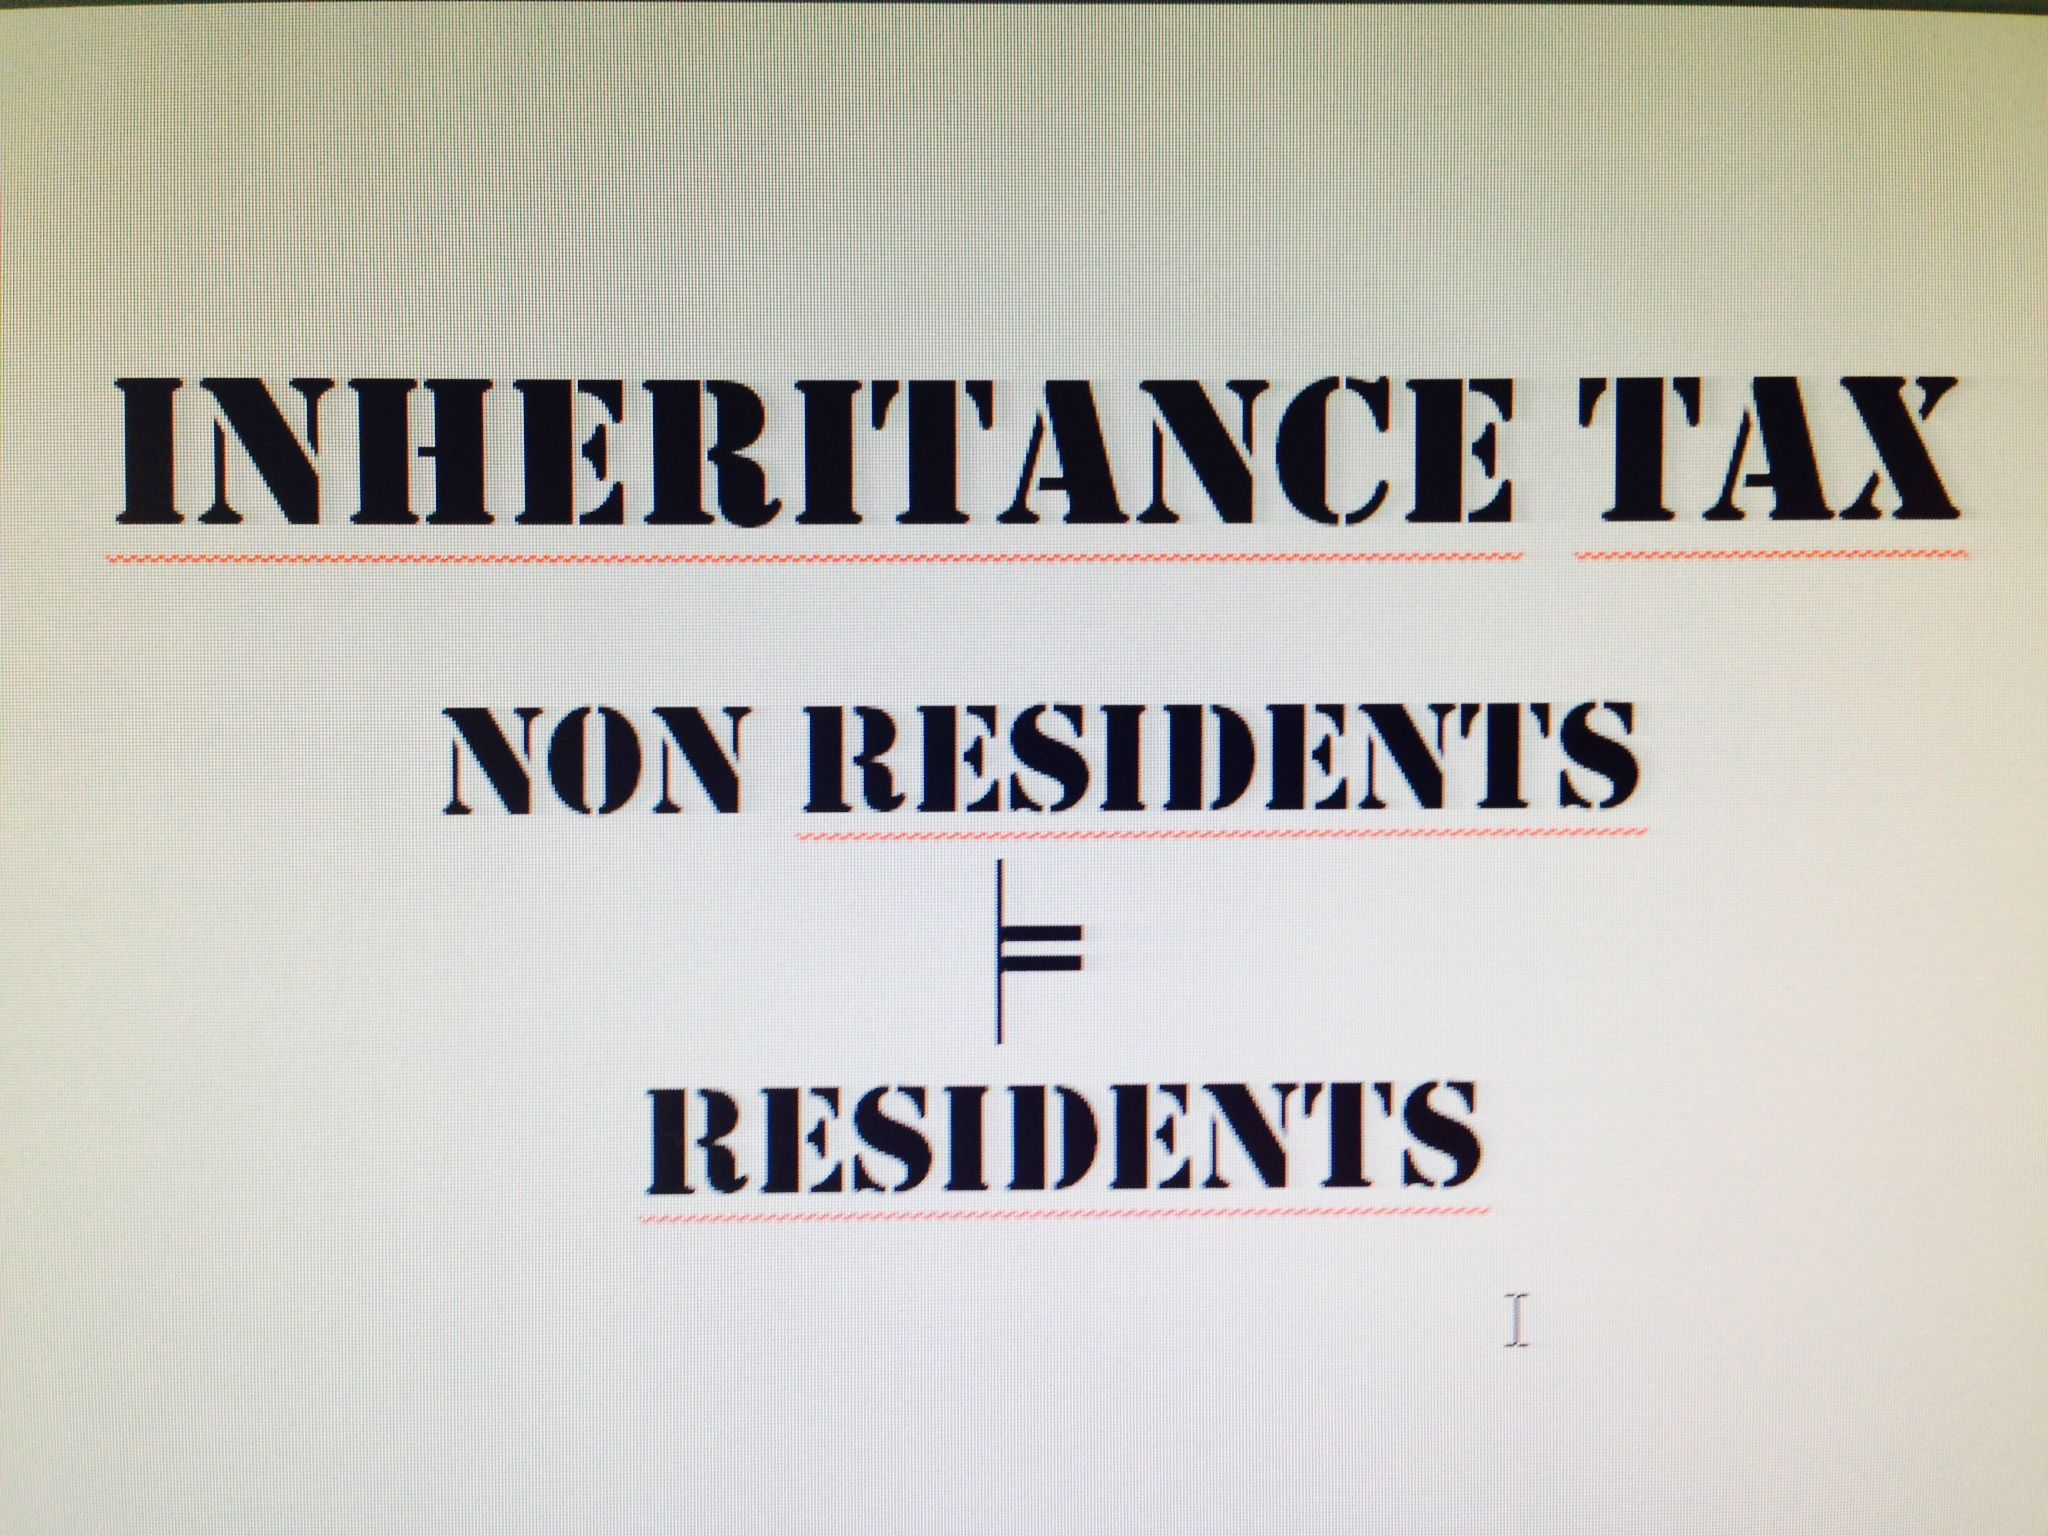 Inheritance tax, gift tax, non residents, property owners, Gran Canaria